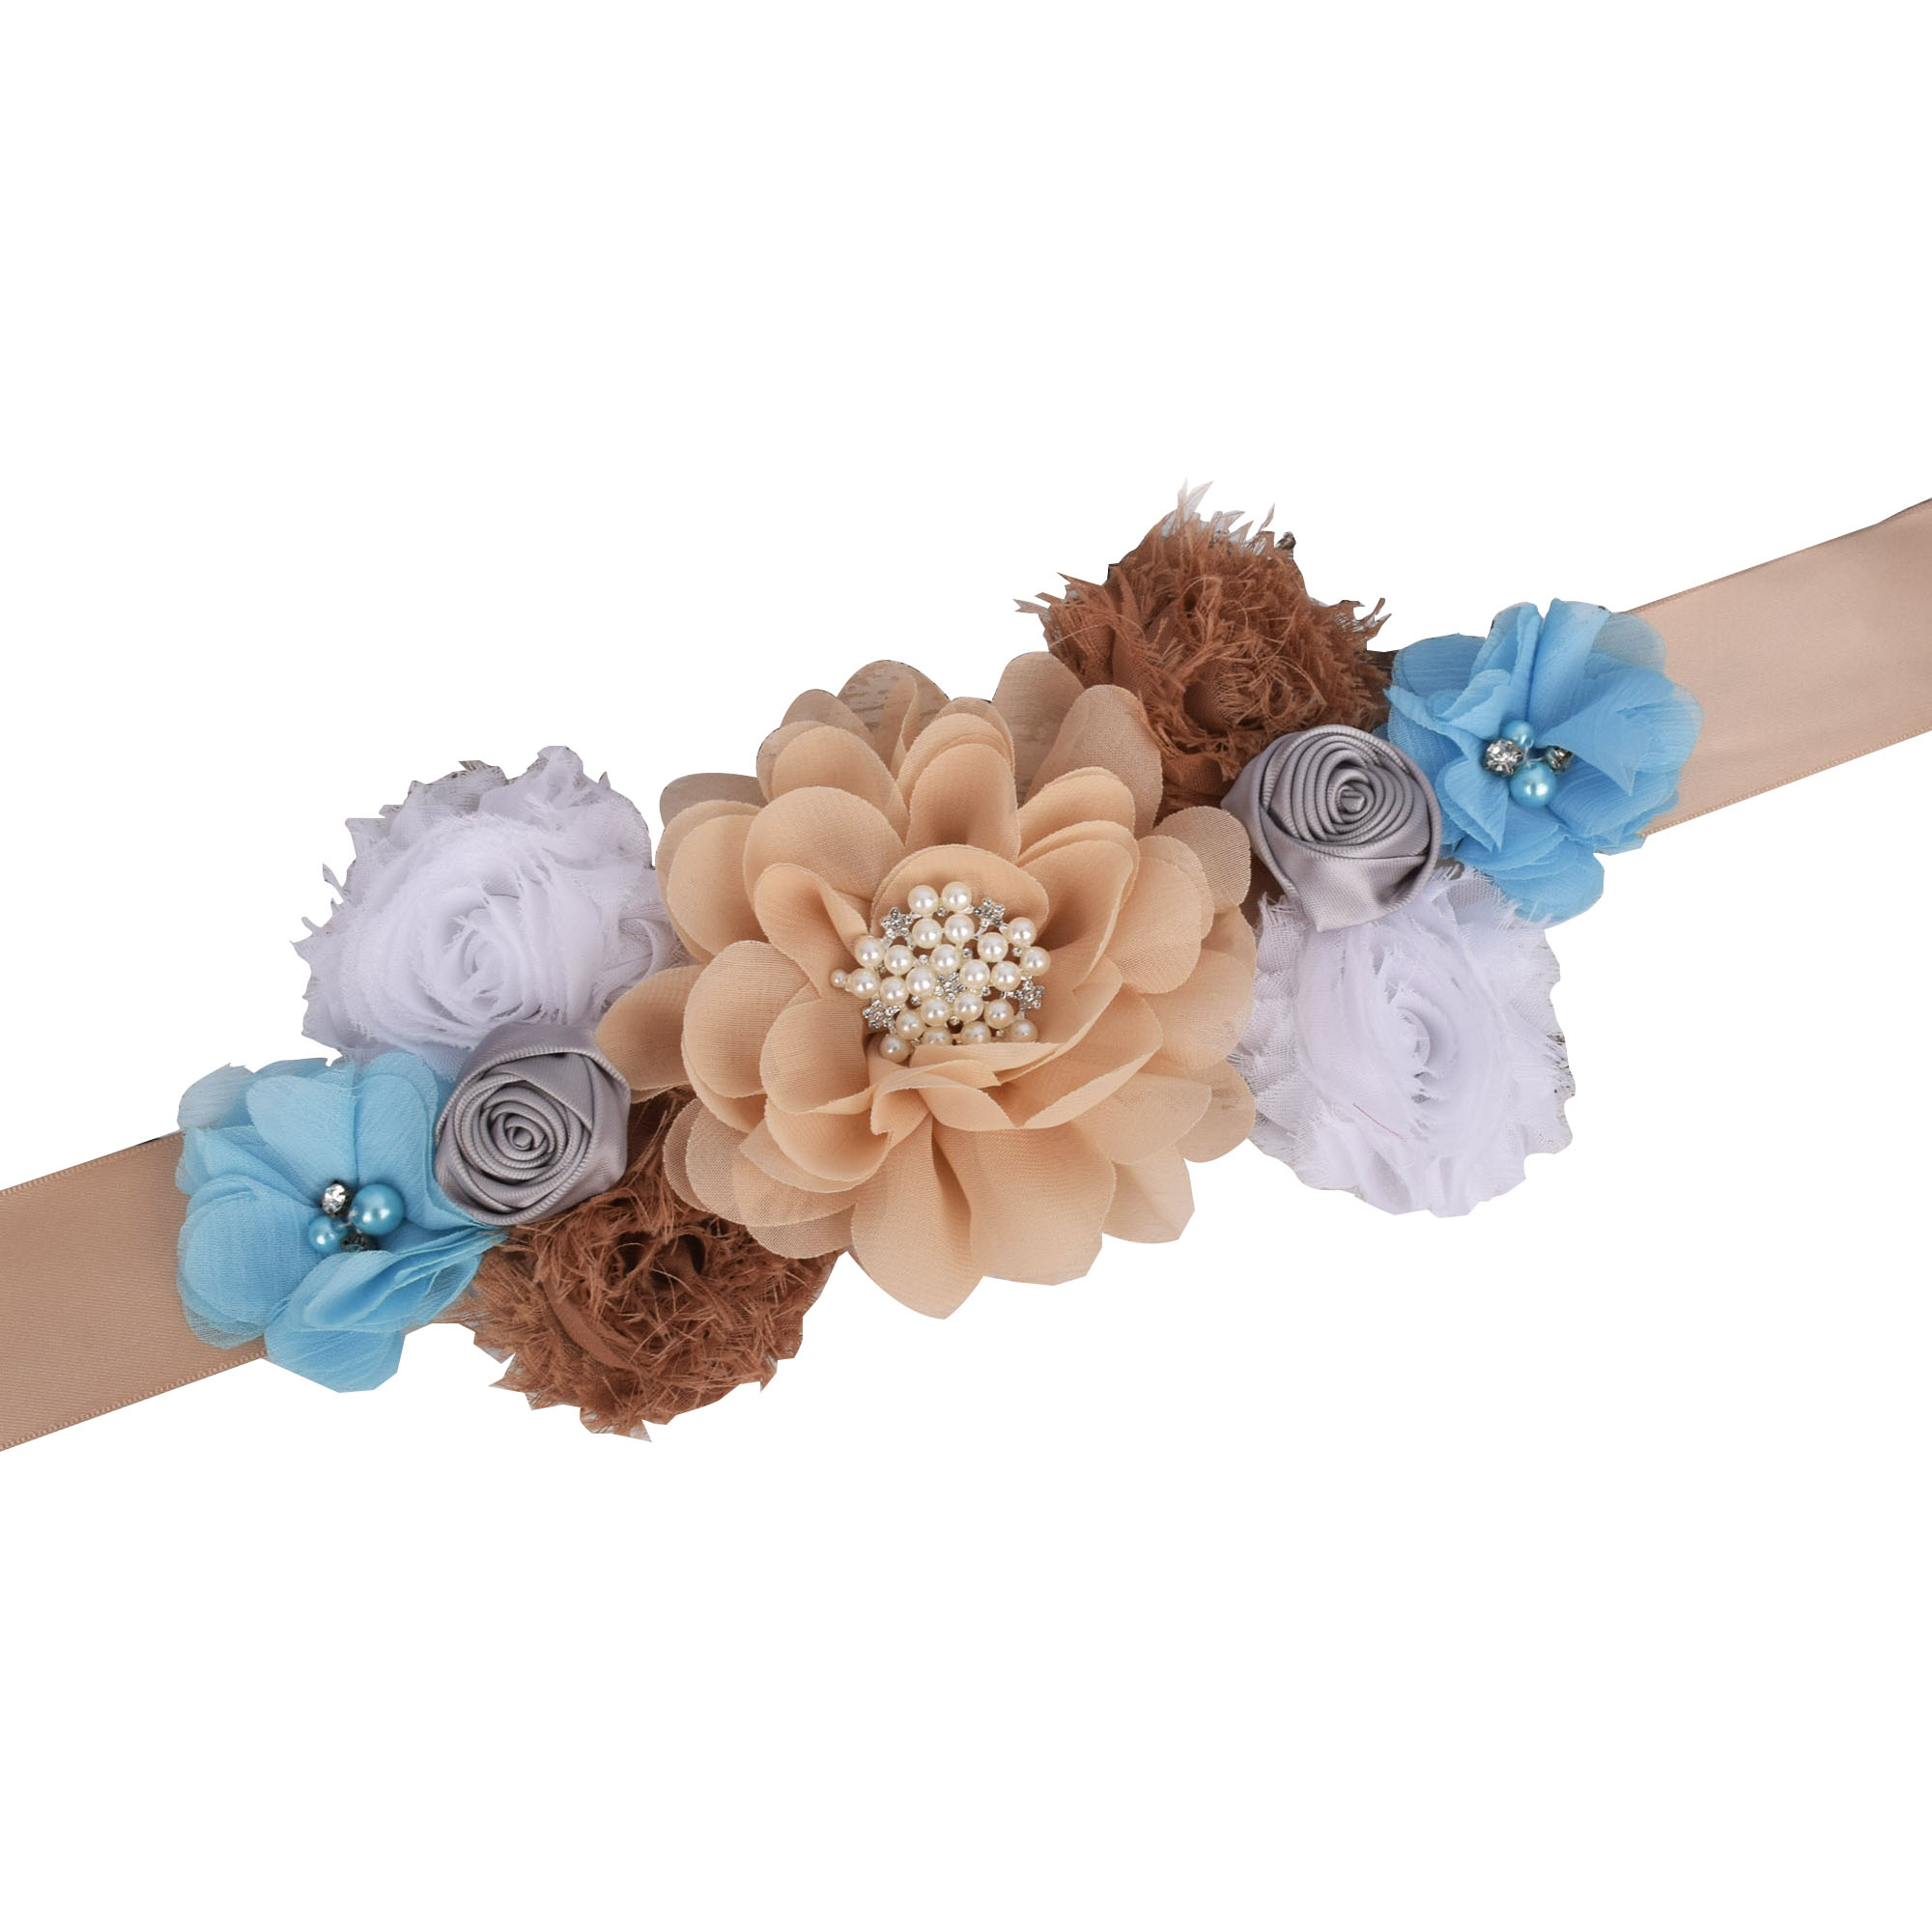 Theeper Woman Vintage Sash Wedding Fancy Waistband Maternity Sash Pregnancy Belly Belt Baby Shower Party Flower Sash Photo Prop